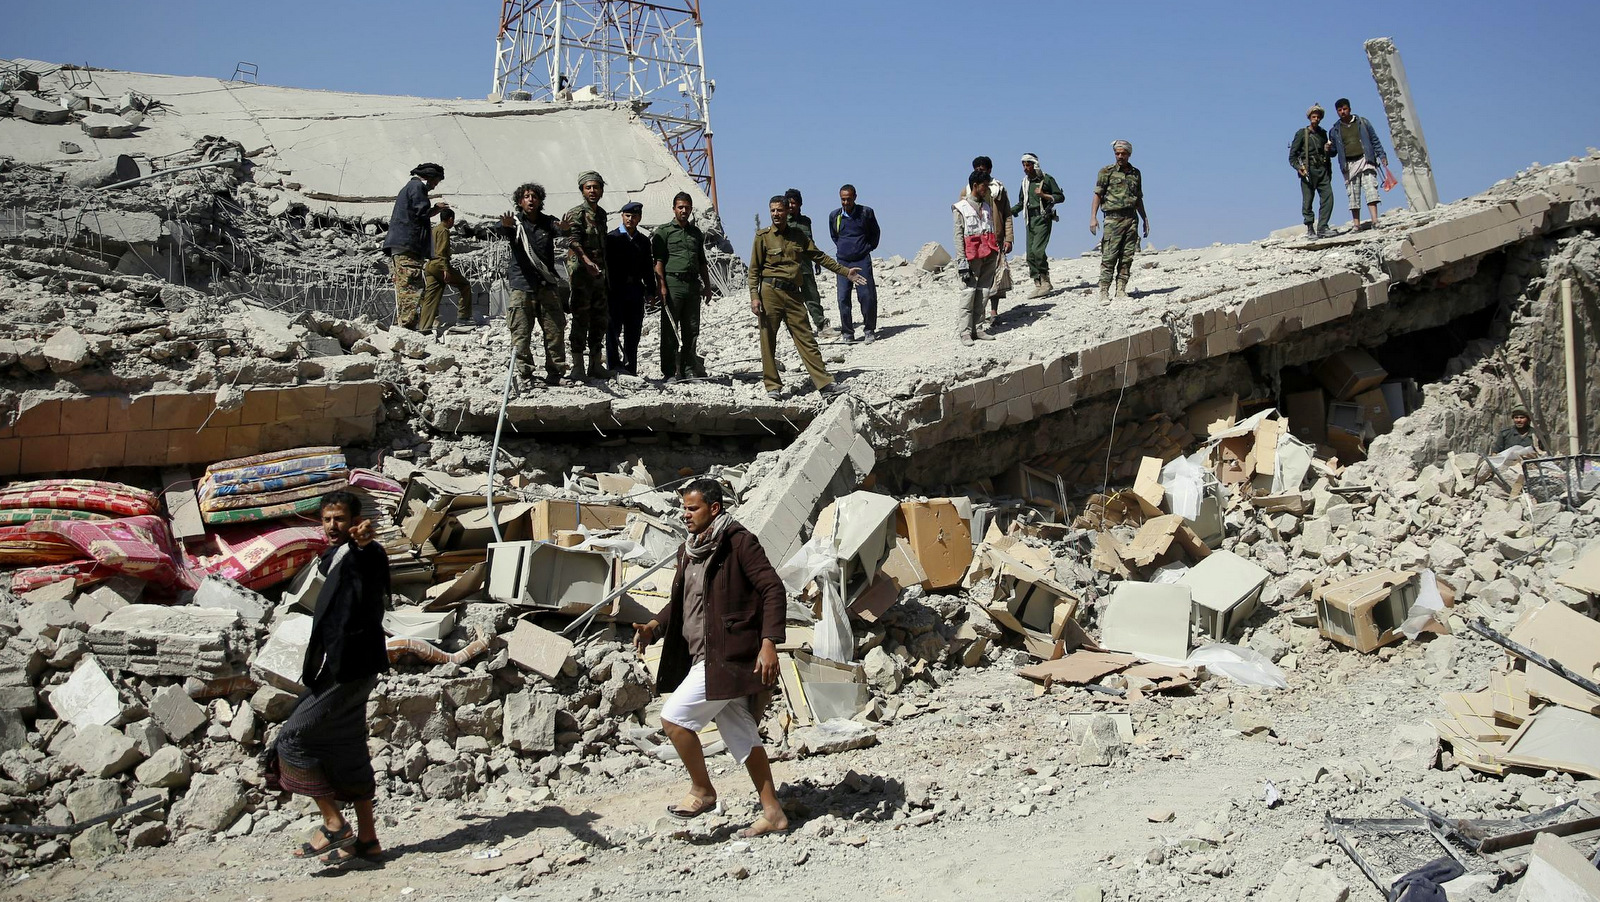 US, British Advisers To Assist Saudi Arabia With Target Acquisition For Yemen Airstrikes